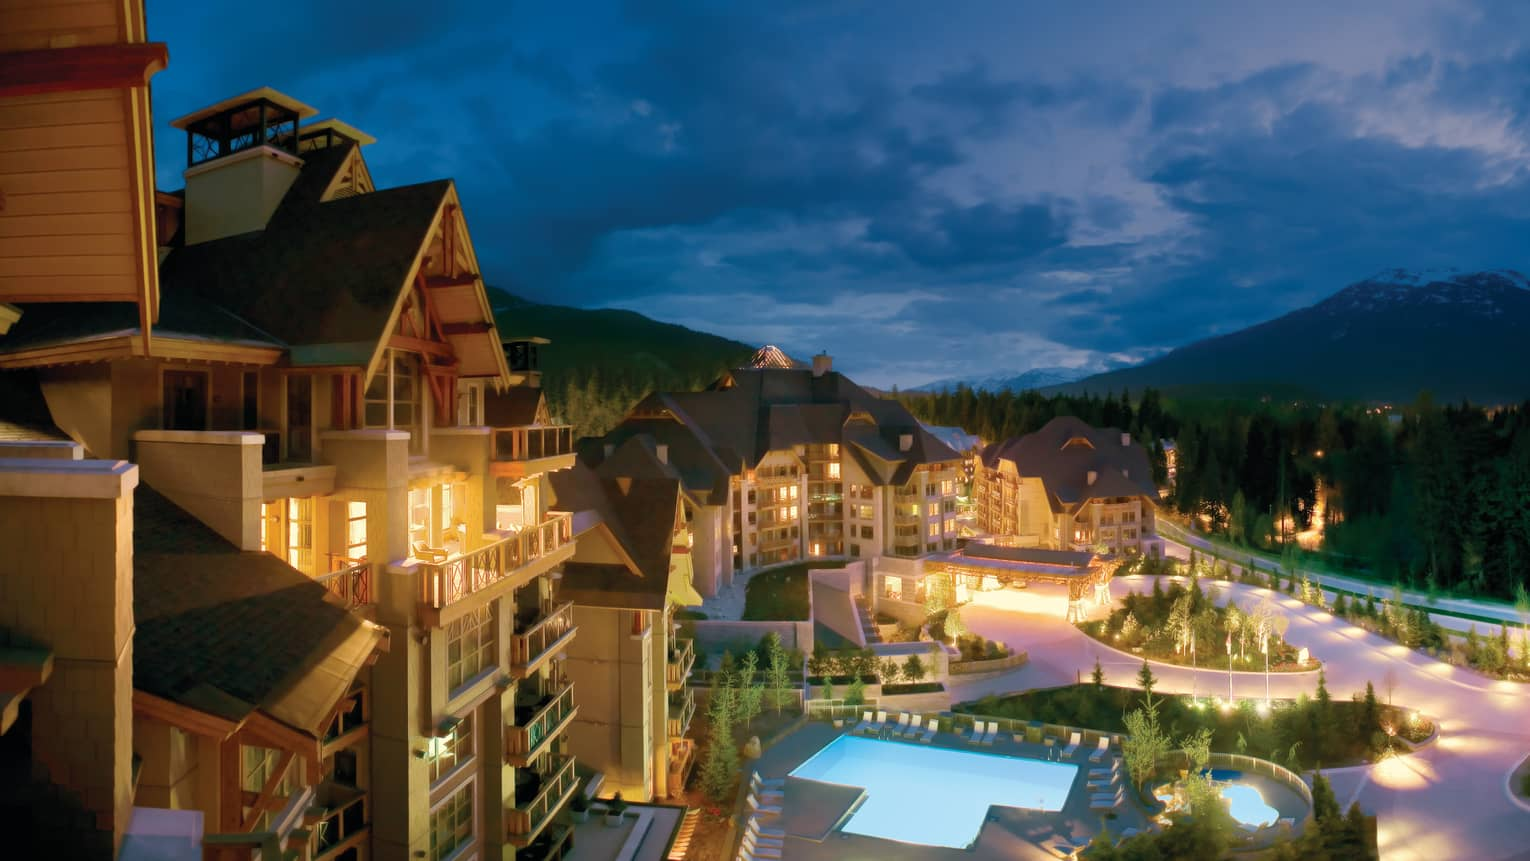 Exterior view of Four Seasons resort at night with swimming pool and mountains in background